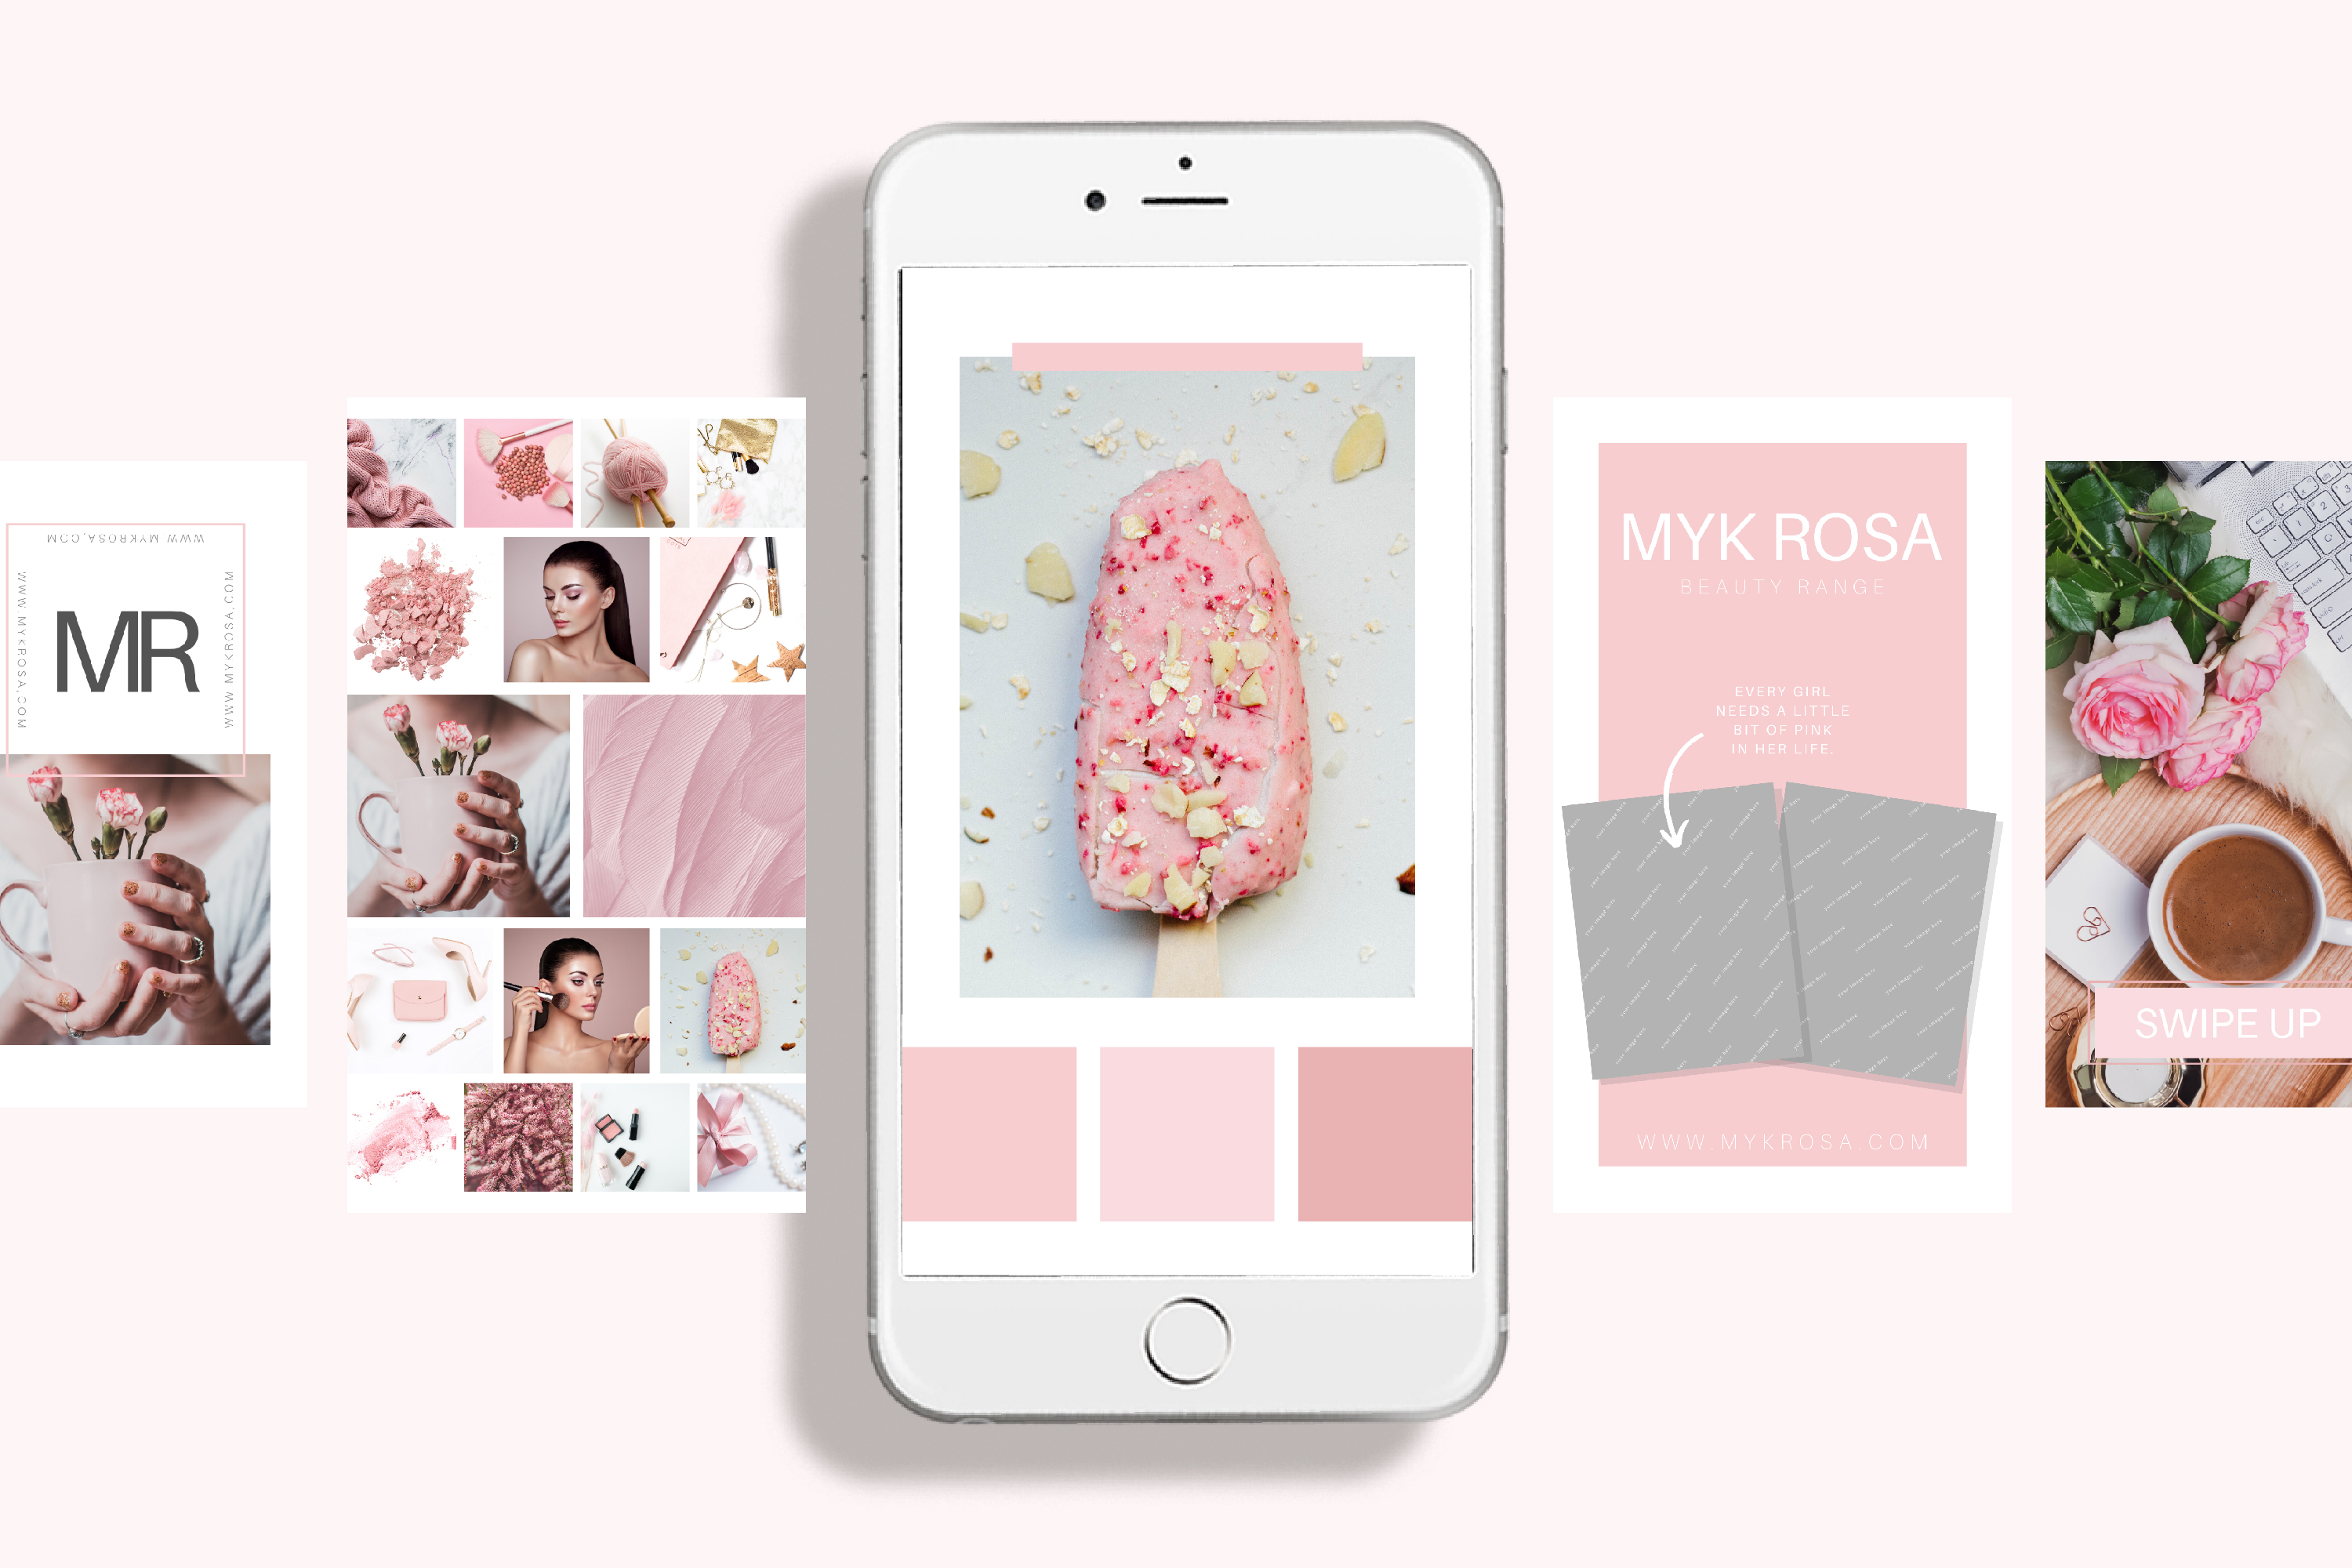 Instagram Story Canva Template - Myk Rosa example image 2